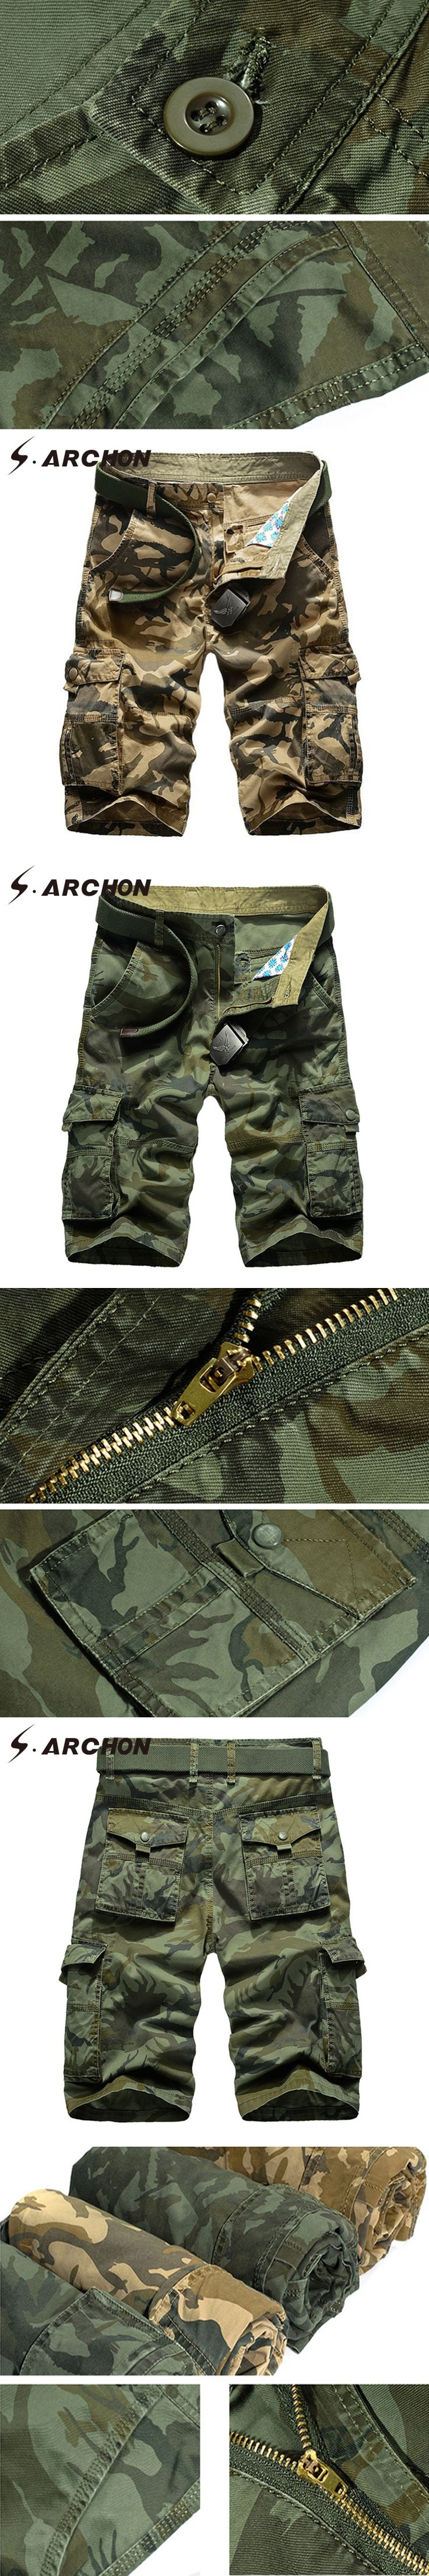 S.ARCHON Casual Army Tactical Camouflage Cargo Shorts Men Summer Fashion Multi Pockets Cotton Airsoft Paintball Military Shorts